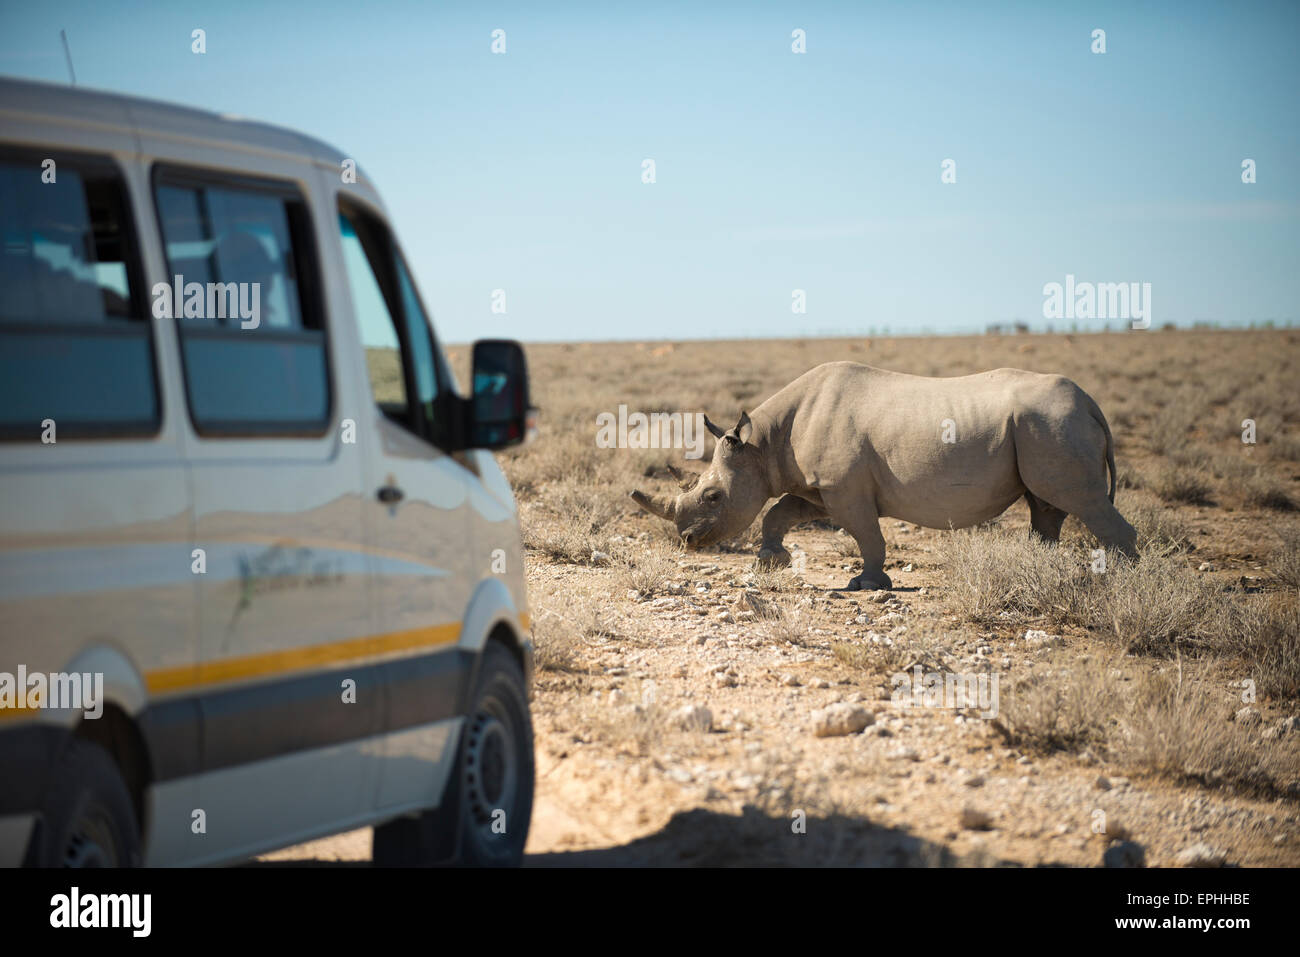 Africa, Namibia. Tour guide van parked infront of rhinoceros. Etosha National Park. - Stock Image